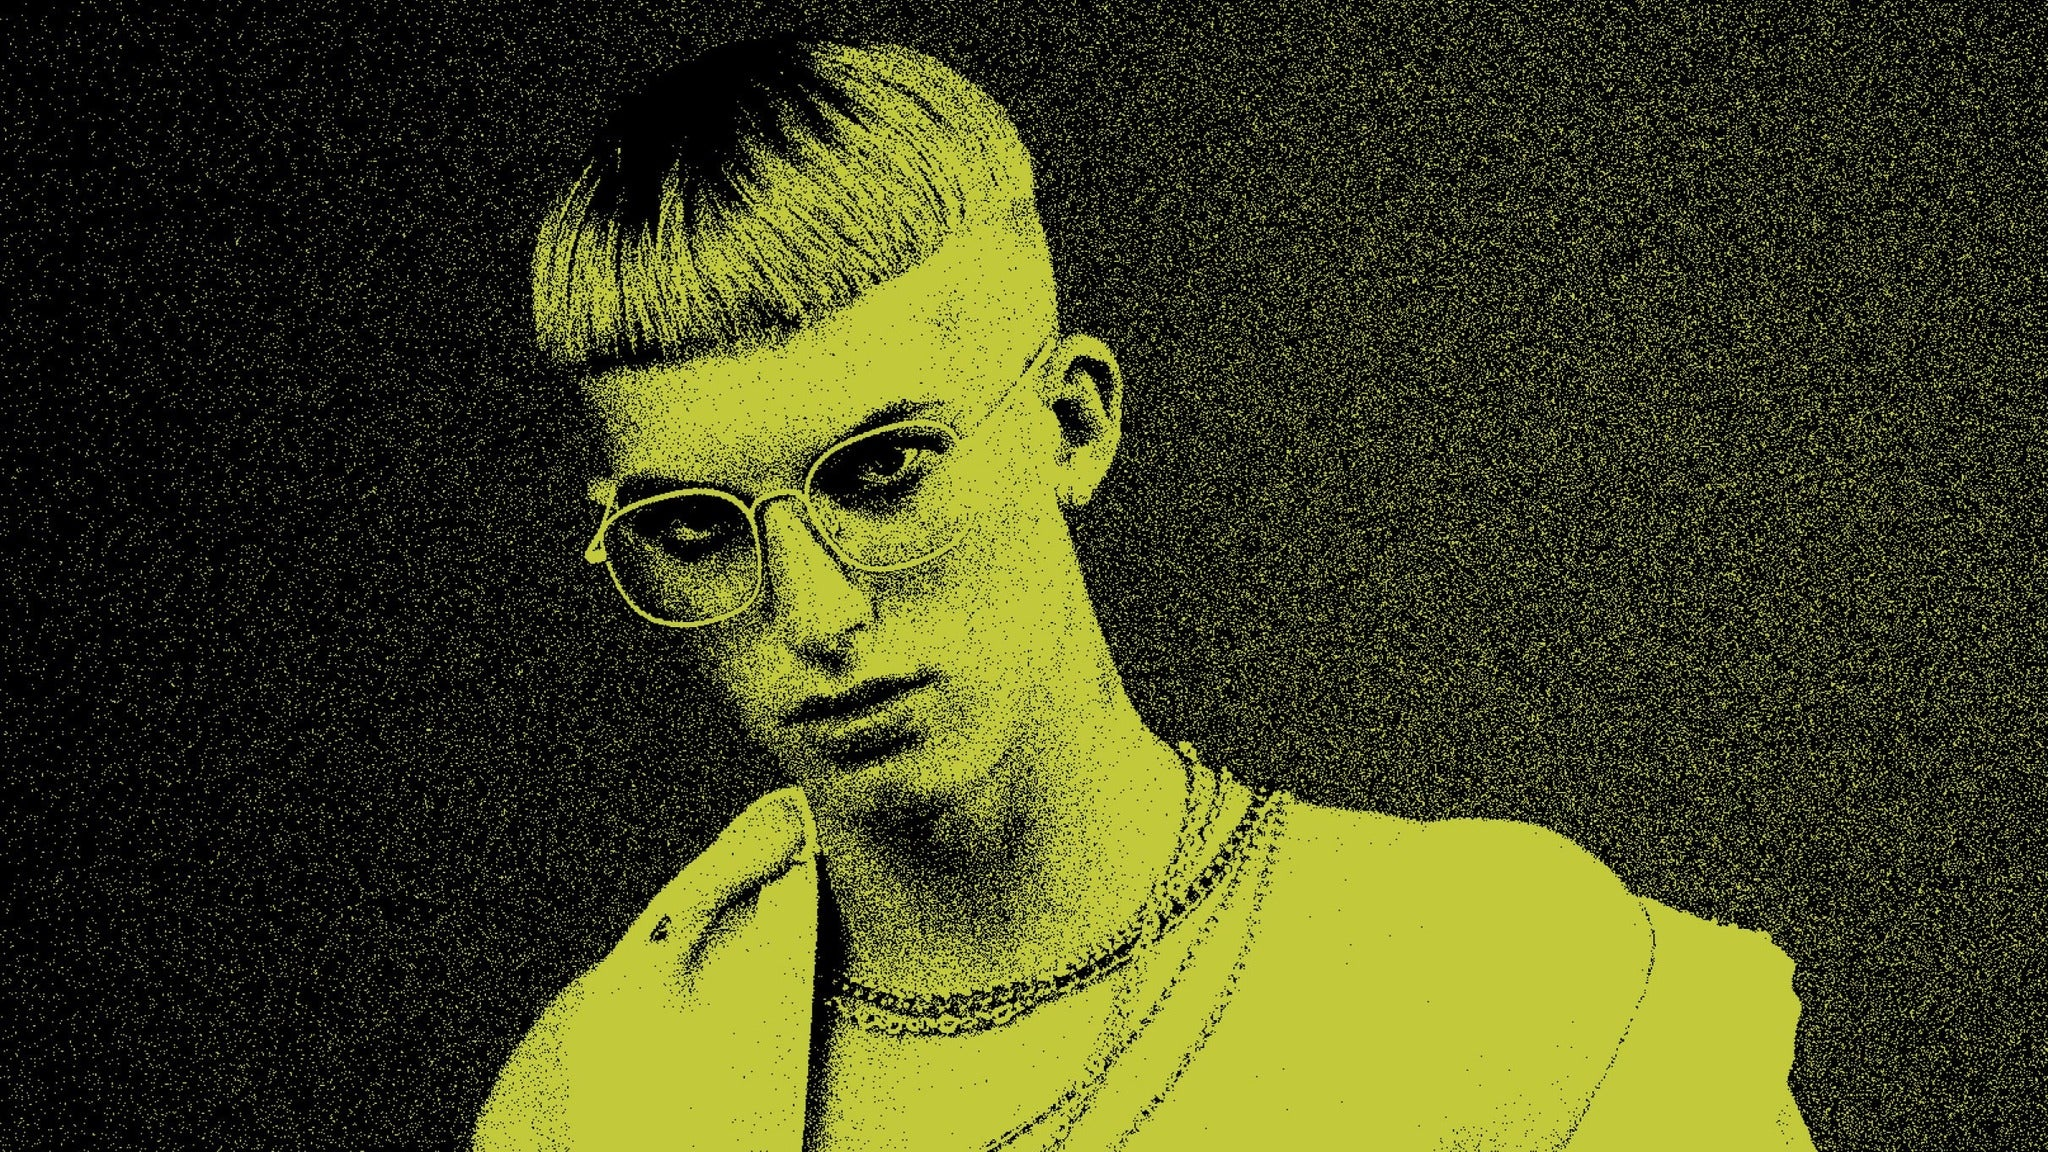 Gus Dapperton - the Polly People Us Tour